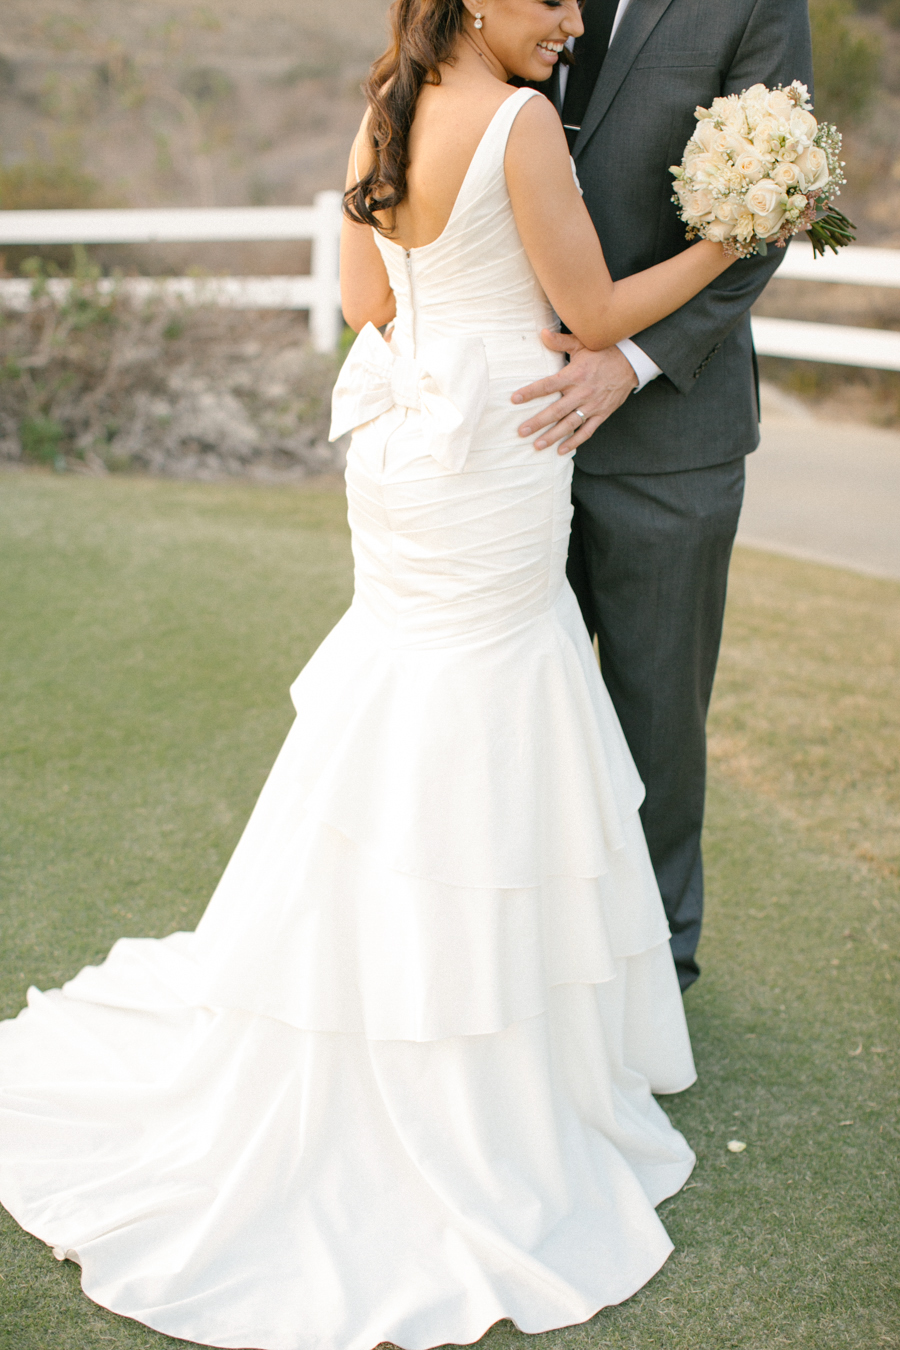 Orange County Black Gold Wedding by Michelle Cross -4a.jpg